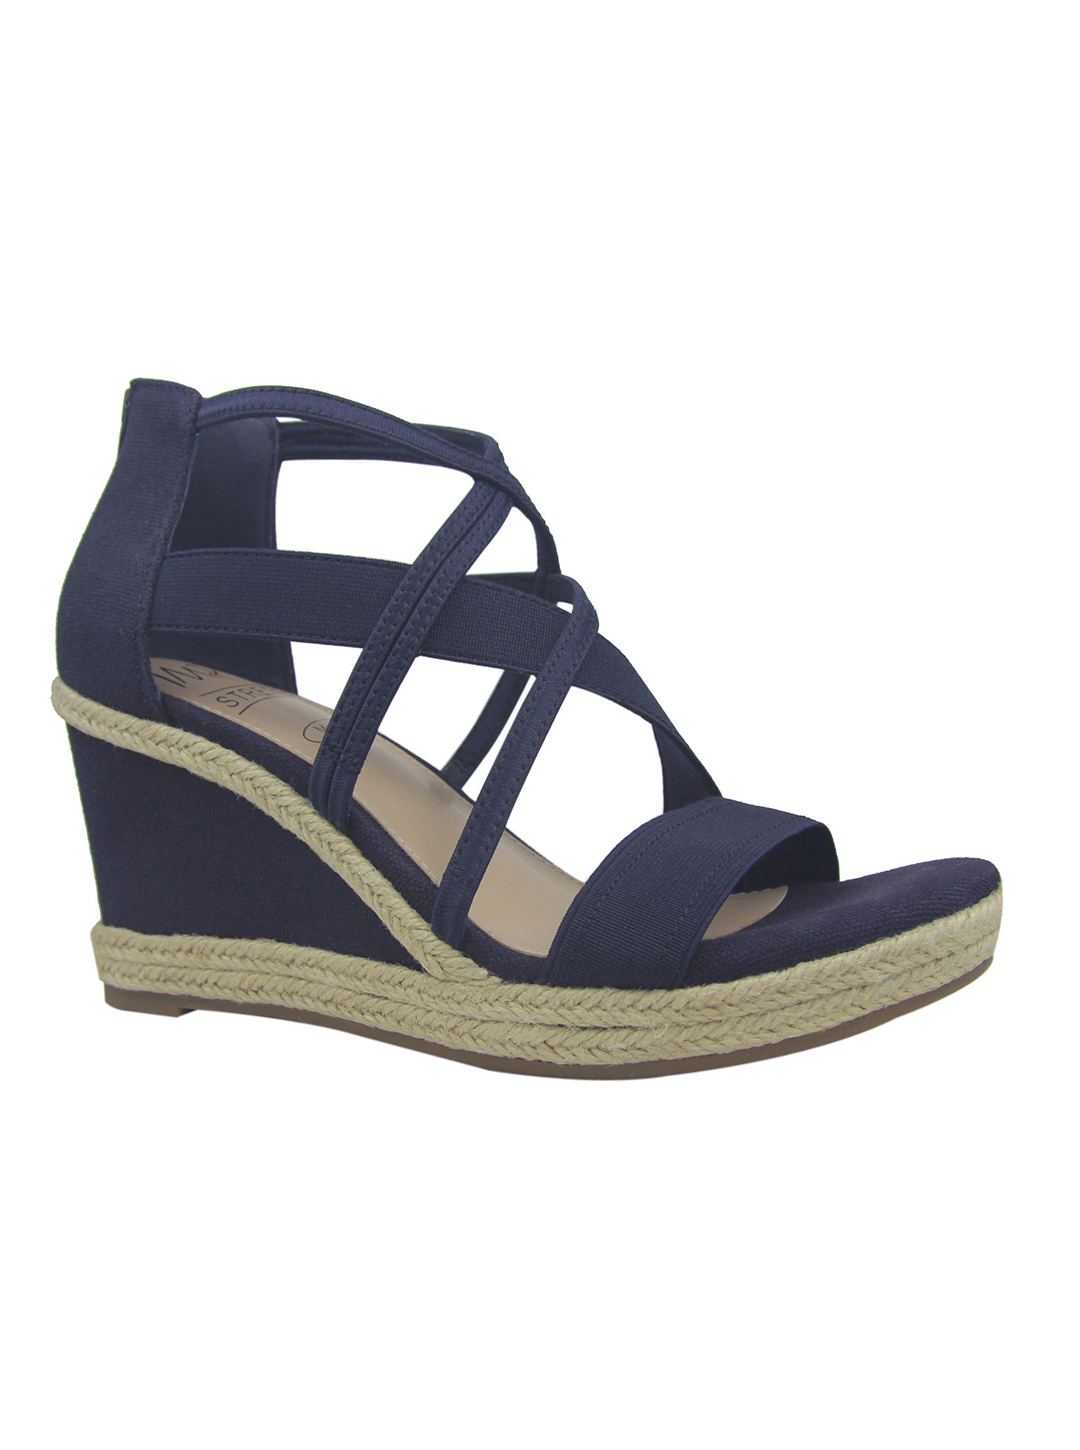 Impo Tacara Wedge Sandals - Midnight blue - Front